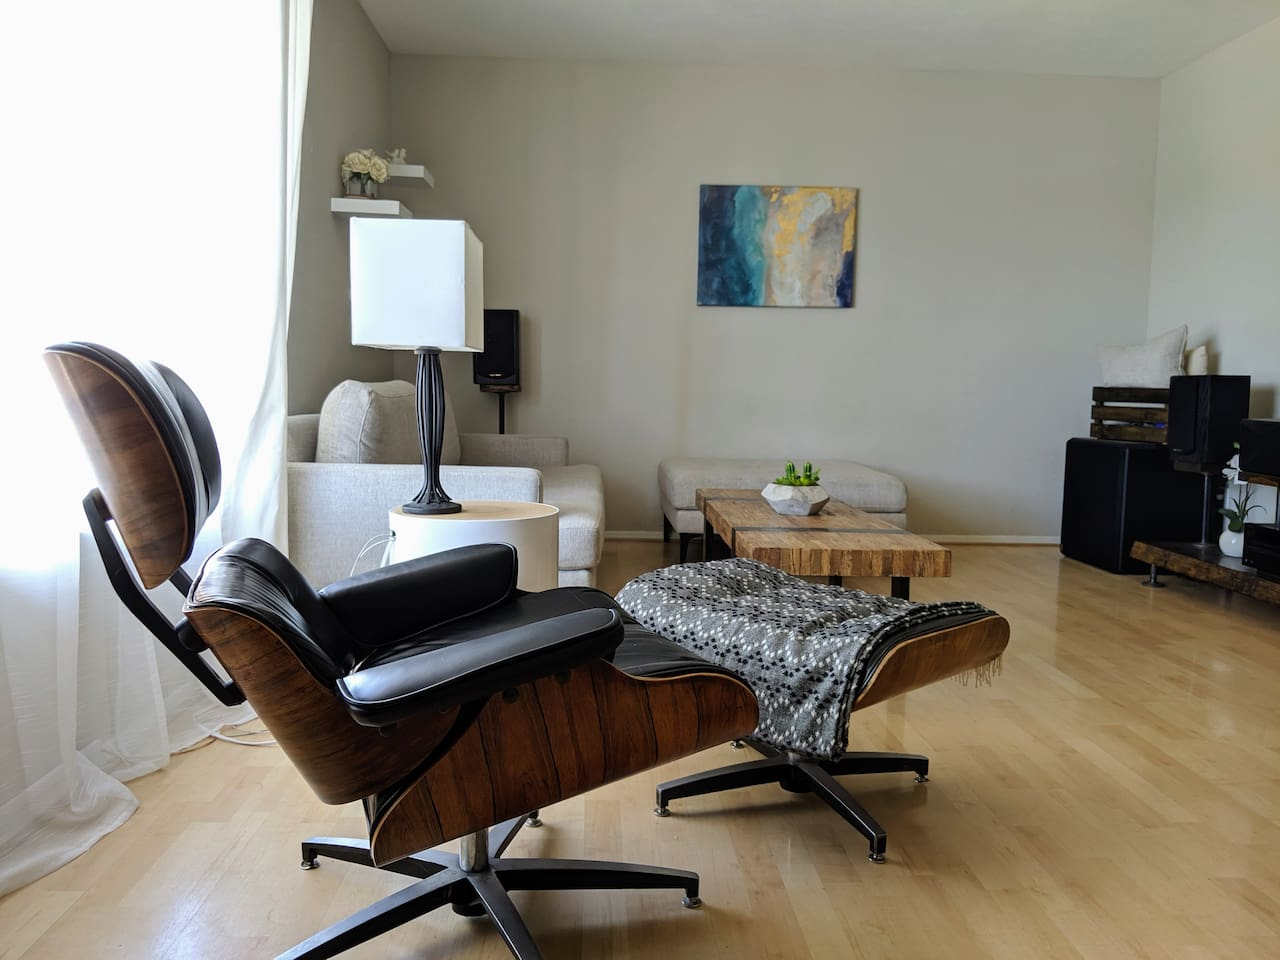 Living room with modern design and HDTV with sound system